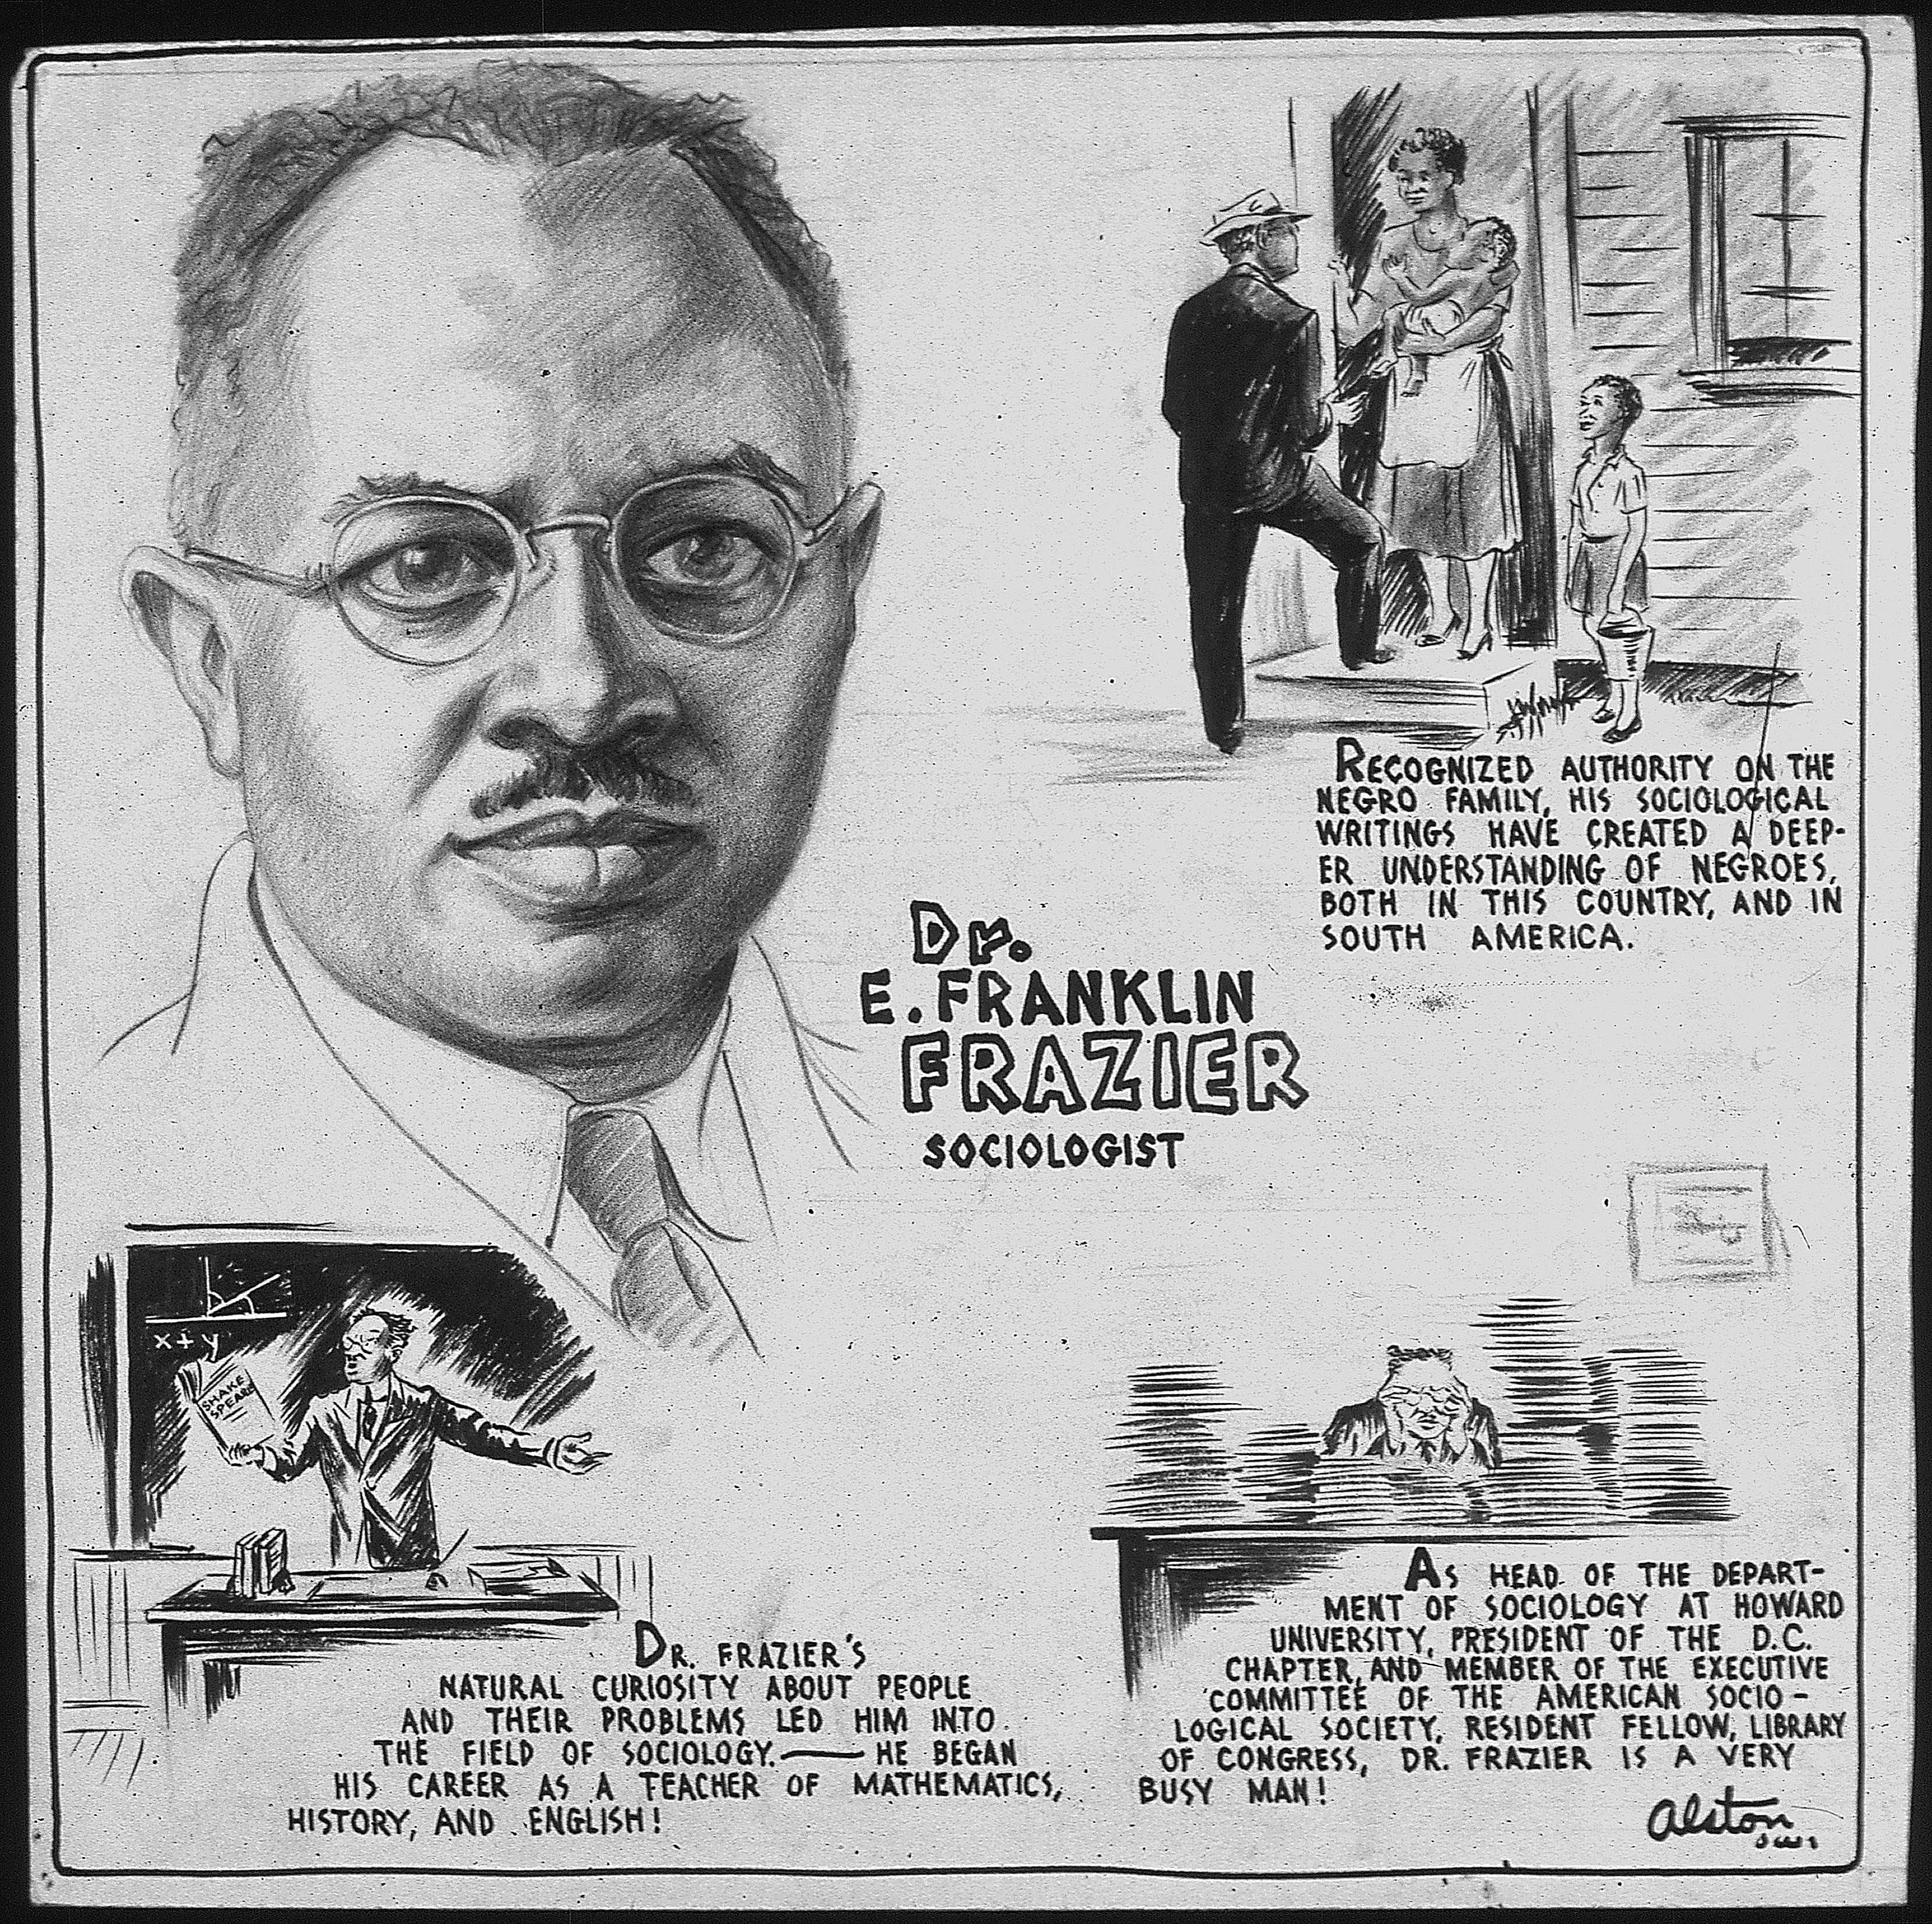 Poster depicting the work of E. Franklin Frazier, renowned Black American sociologist.